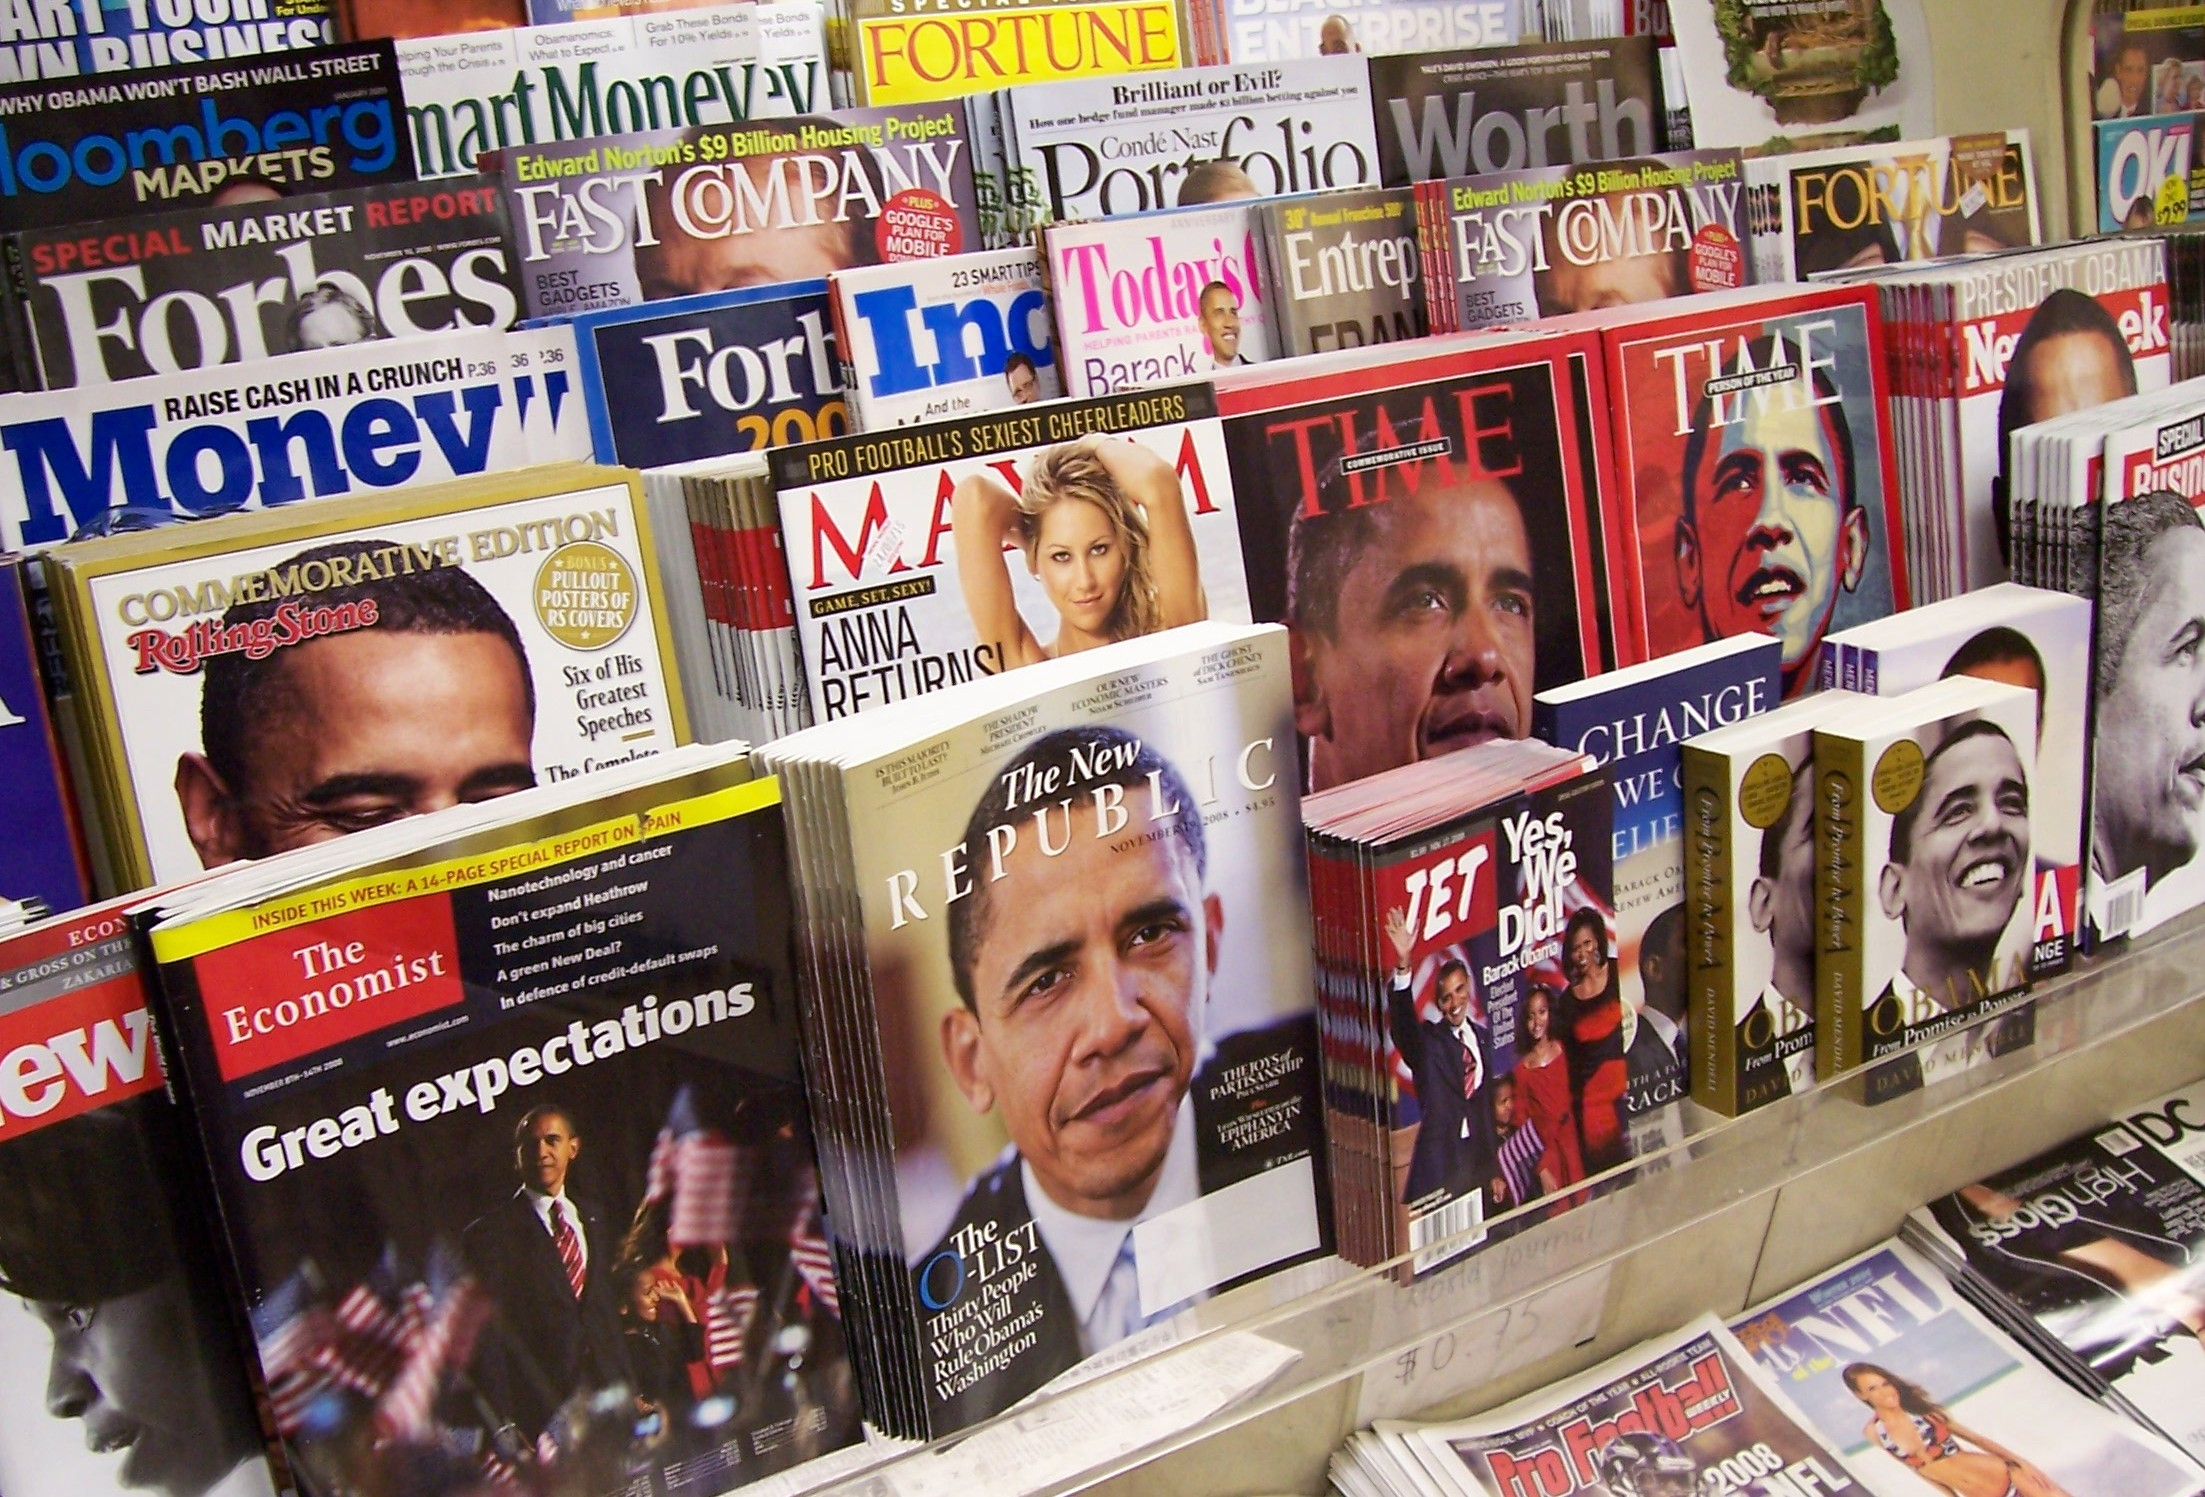 The Top 25 U.S. Consumer Magazines for the First Half of 2012